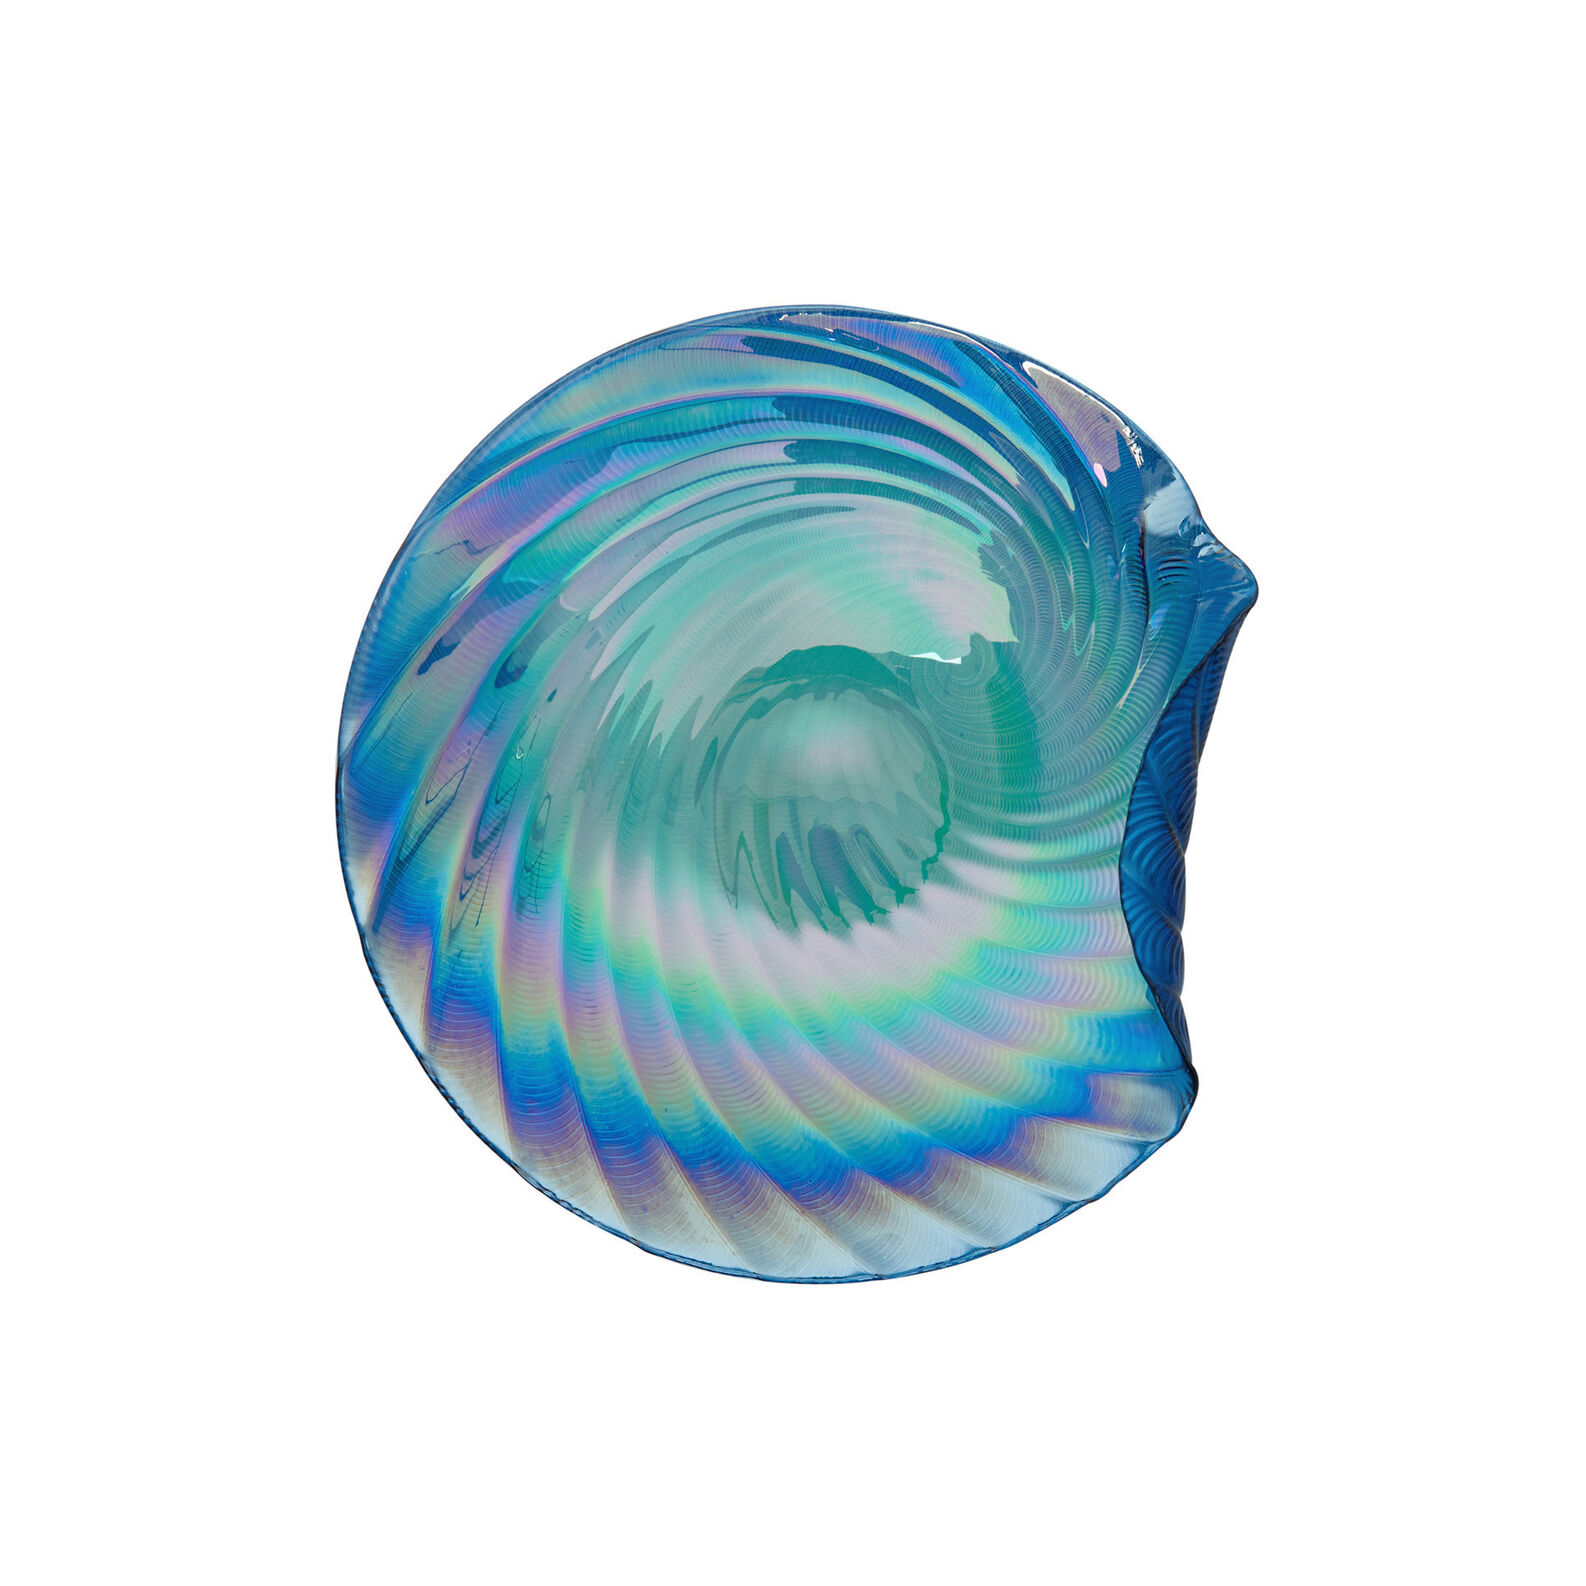 Shell glass cup